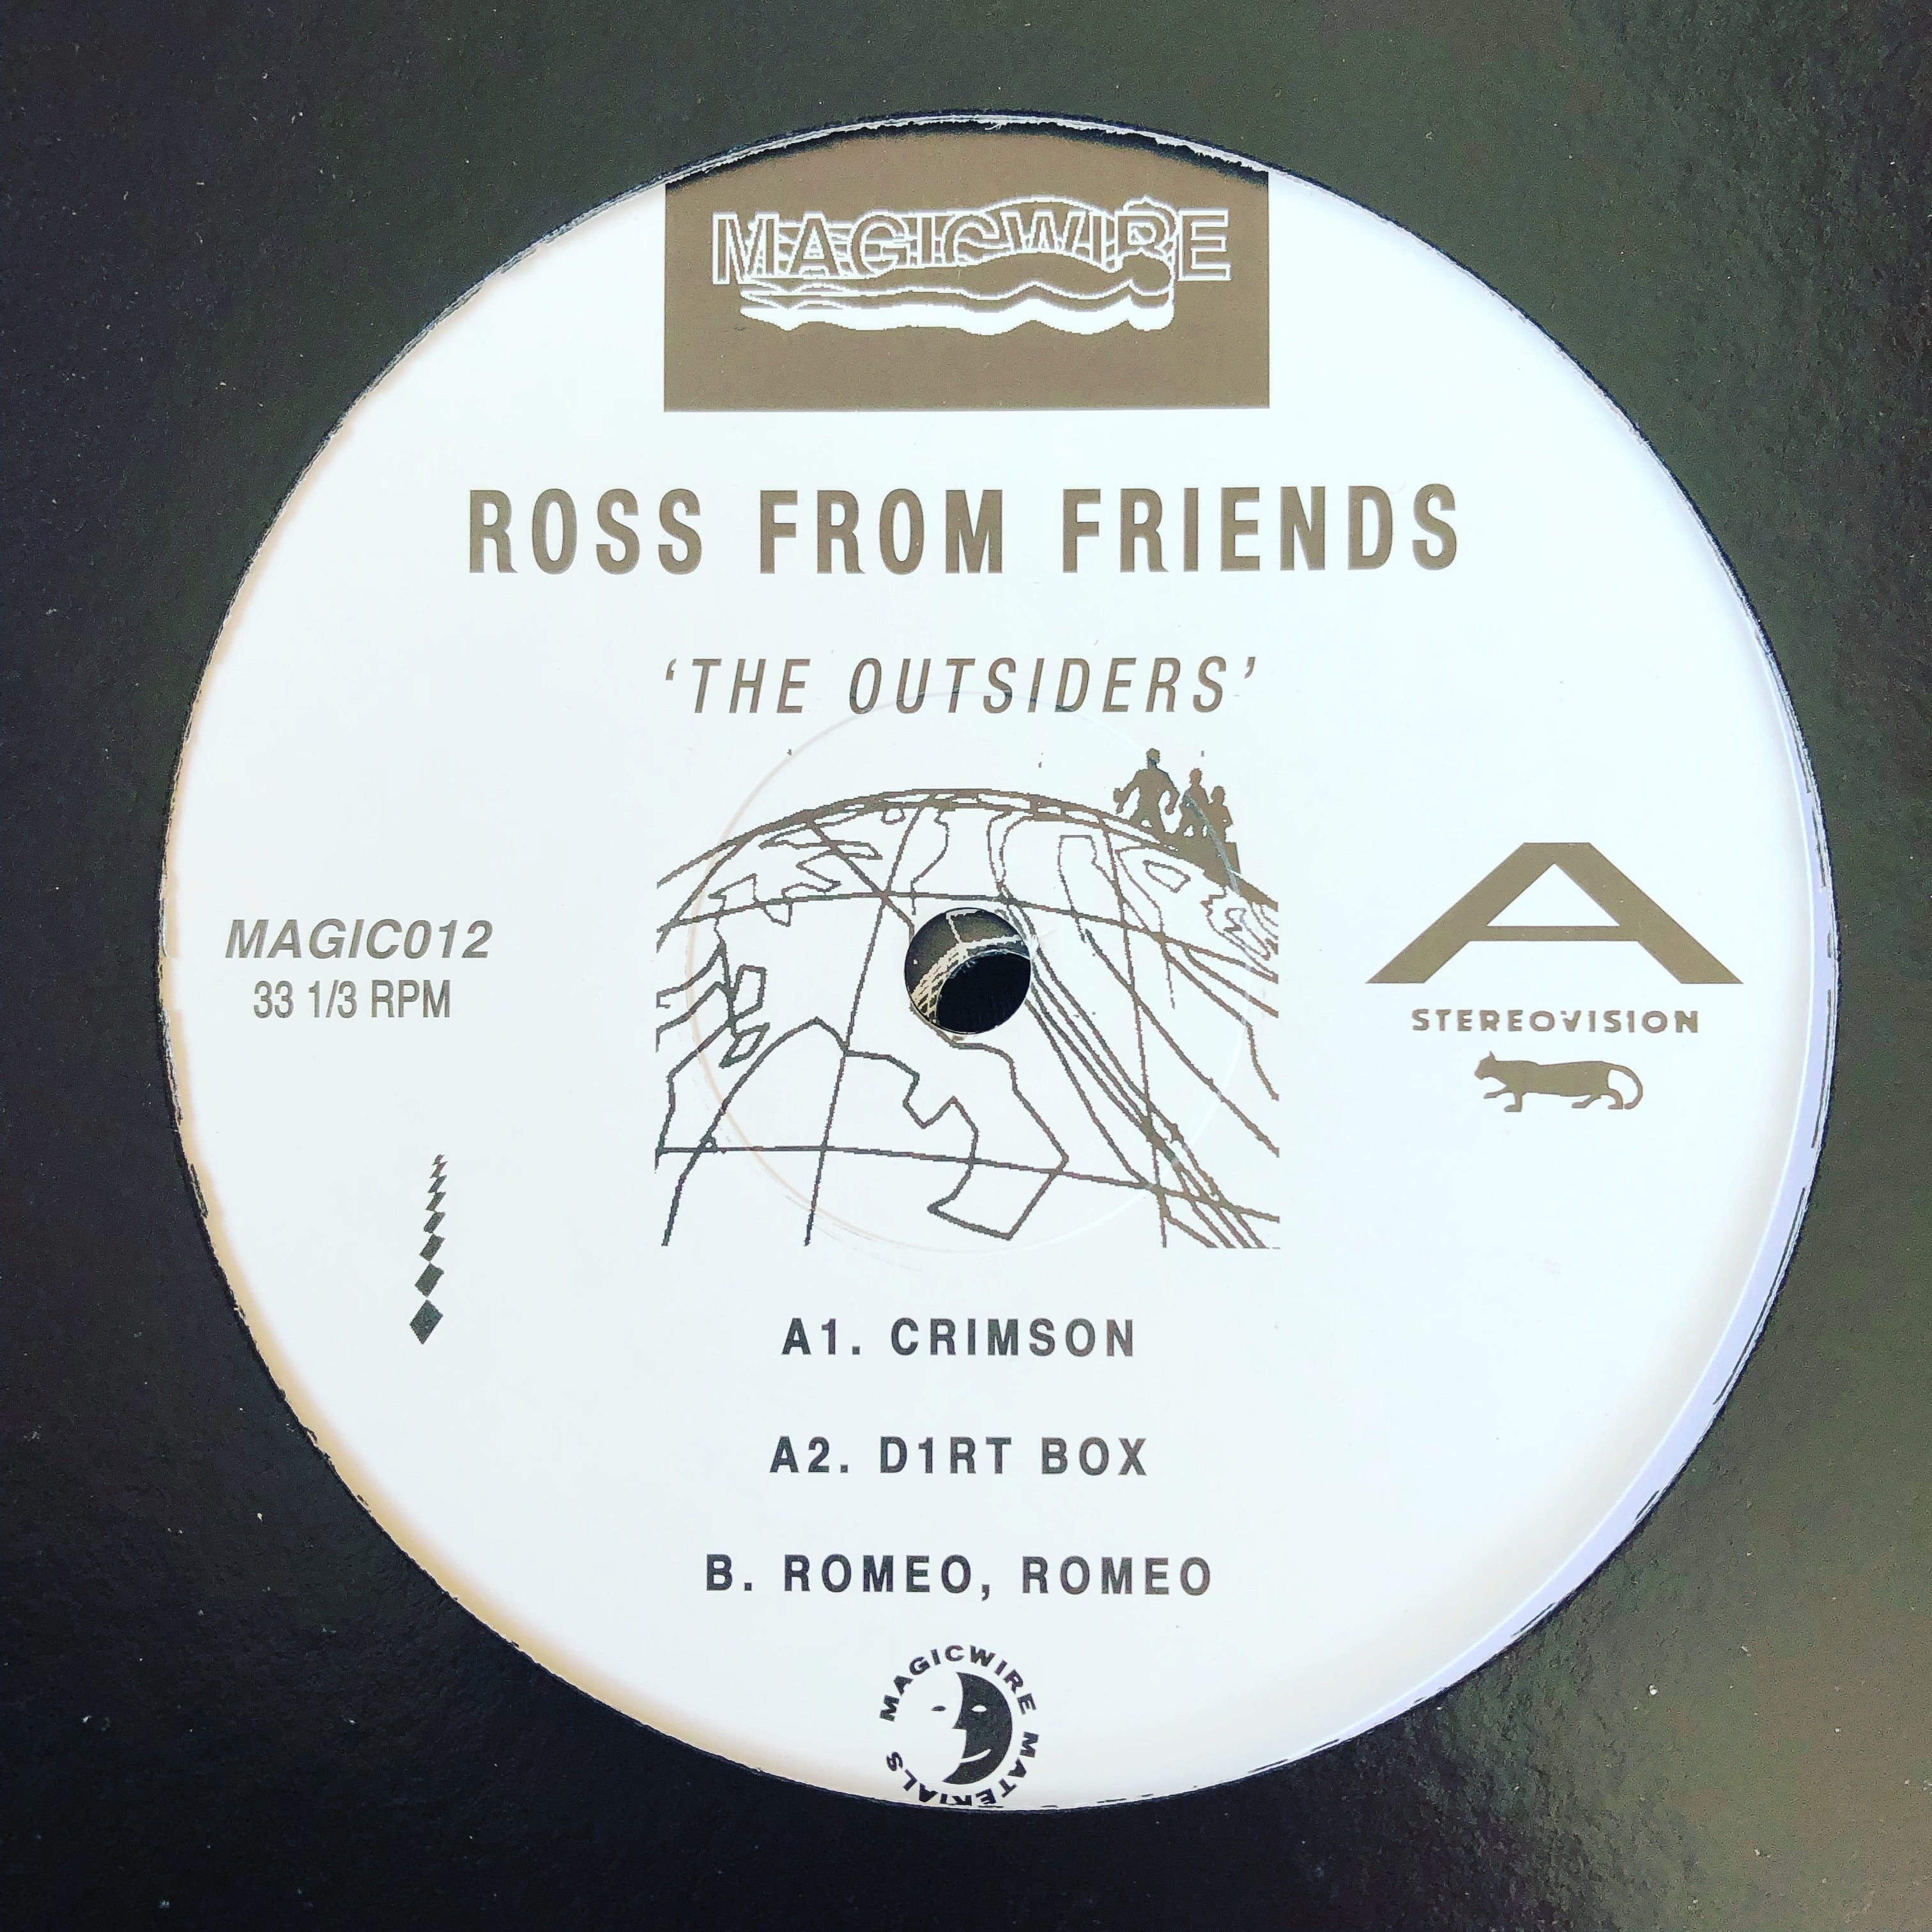 "Ross From Friends ‎– The Outsiders : Magicwire ‎– MAGIC012 : 2 × Vinyl, 12"", 33 ⅓ RPM"